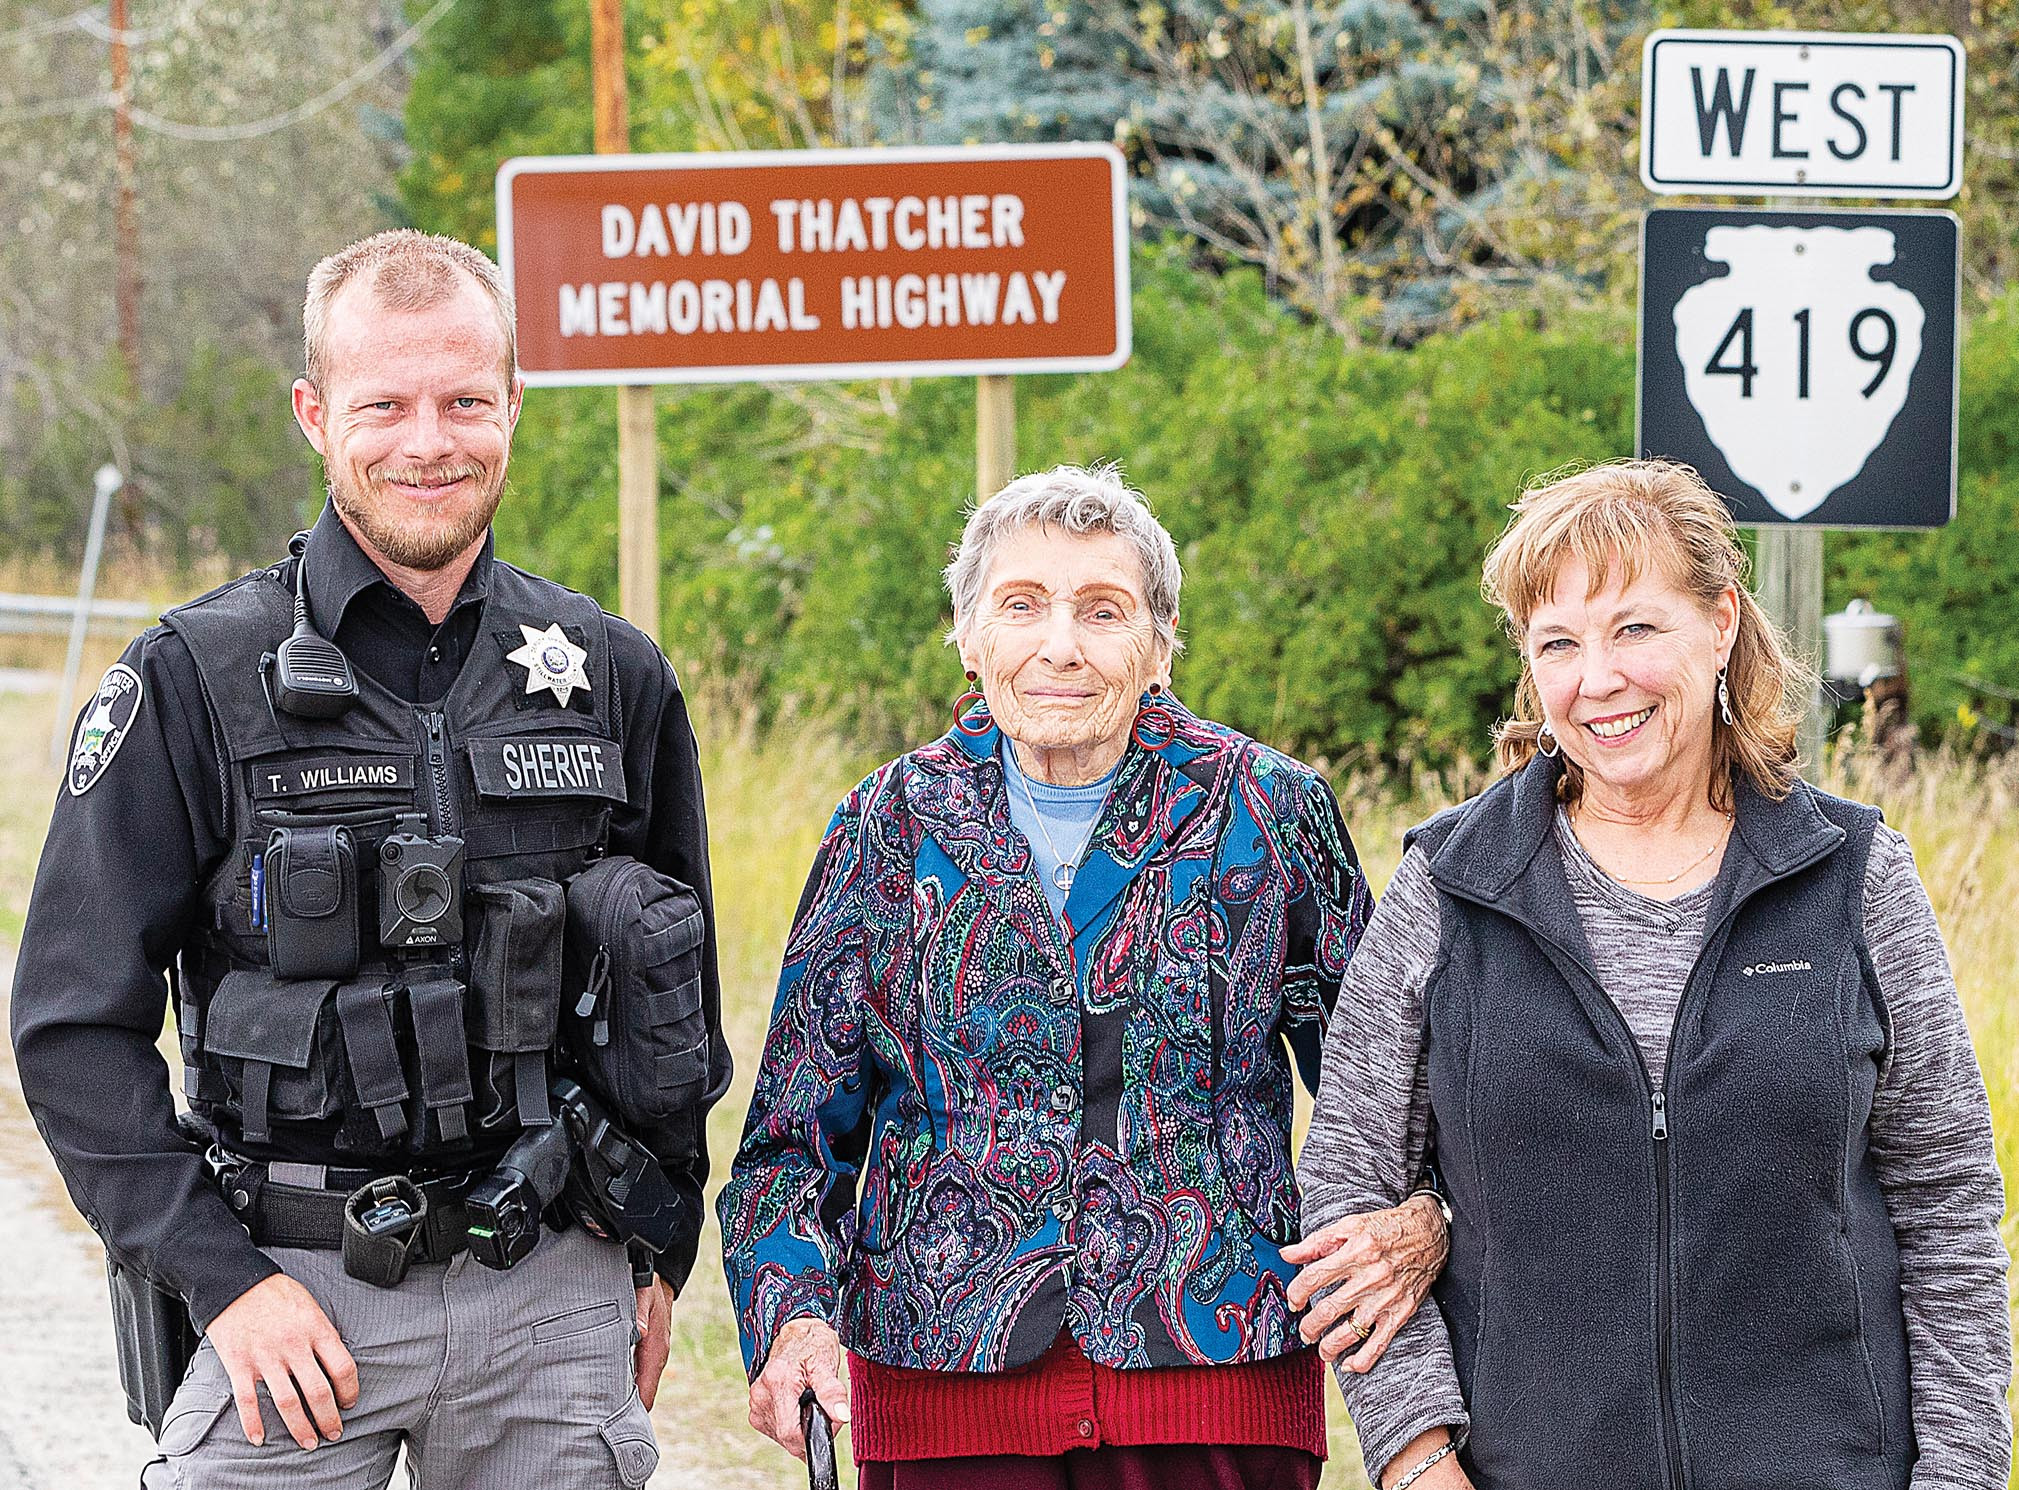 Photo by Maurice CravensStillwater County Sheriff's Deputy Ty Williams poses withThatcher's wife and daughter — Dawn Thatcher and Sandy Miller — in front of the new highway sign.